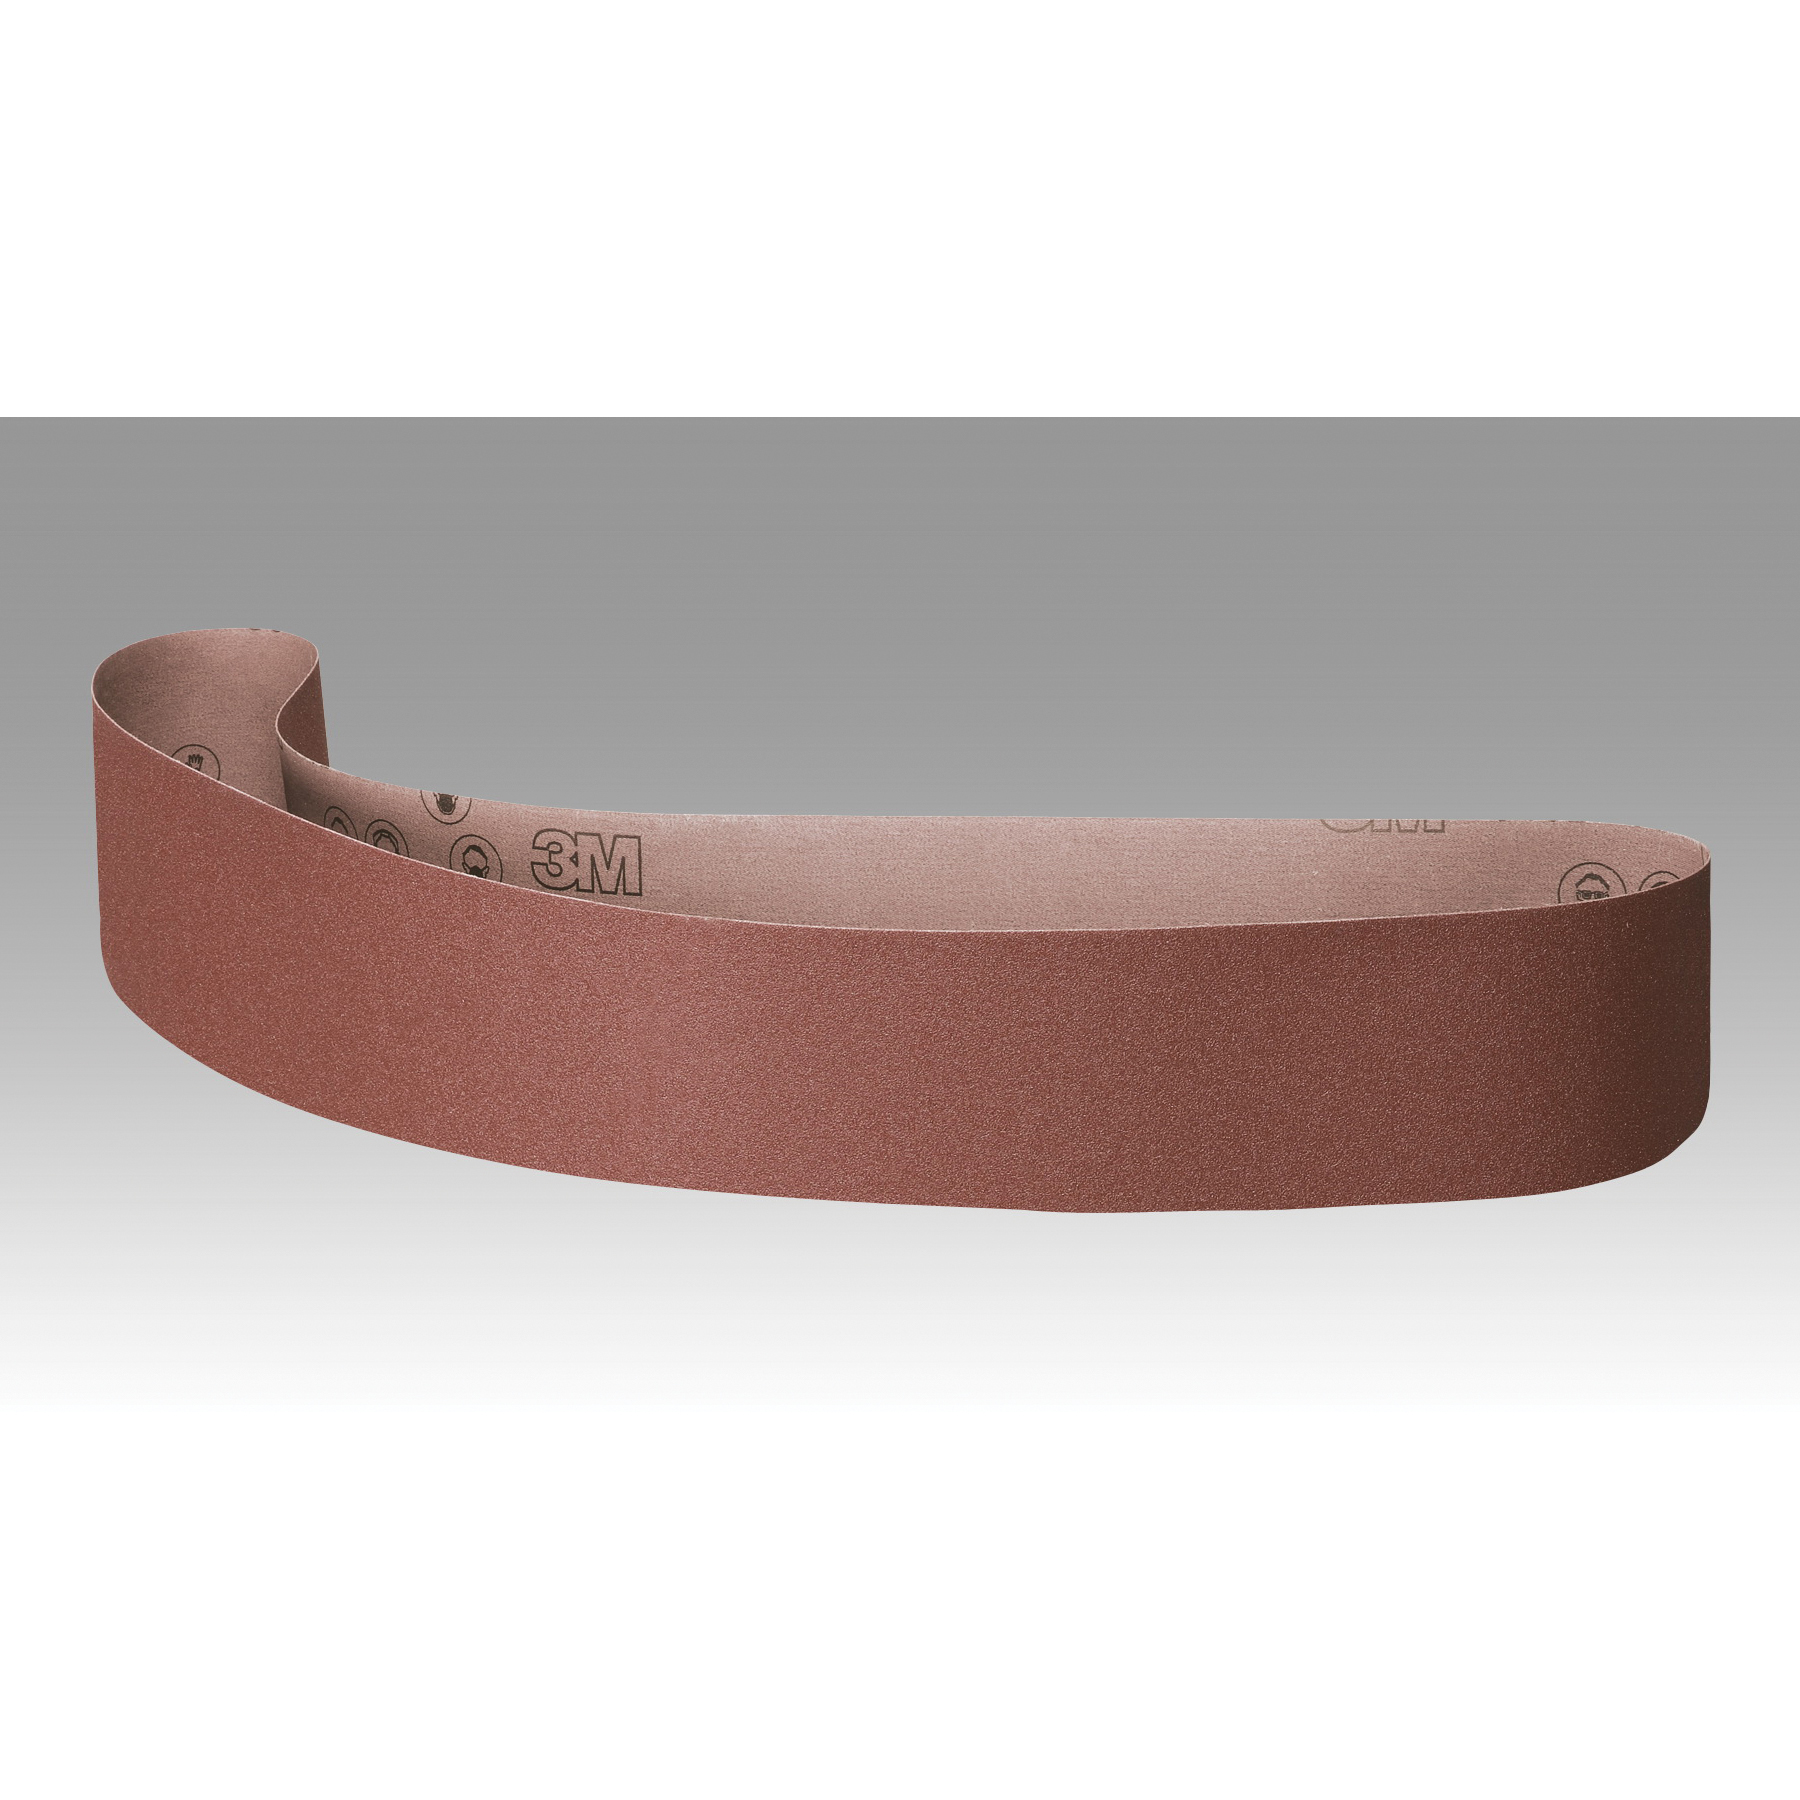 3M™ 051144-77489 361F Narrow Abrasive Belt, 4 in W x 36 in L, 80 Grit, Medium Grade, Aluminum Oxide Abrasive, Polyester Backing